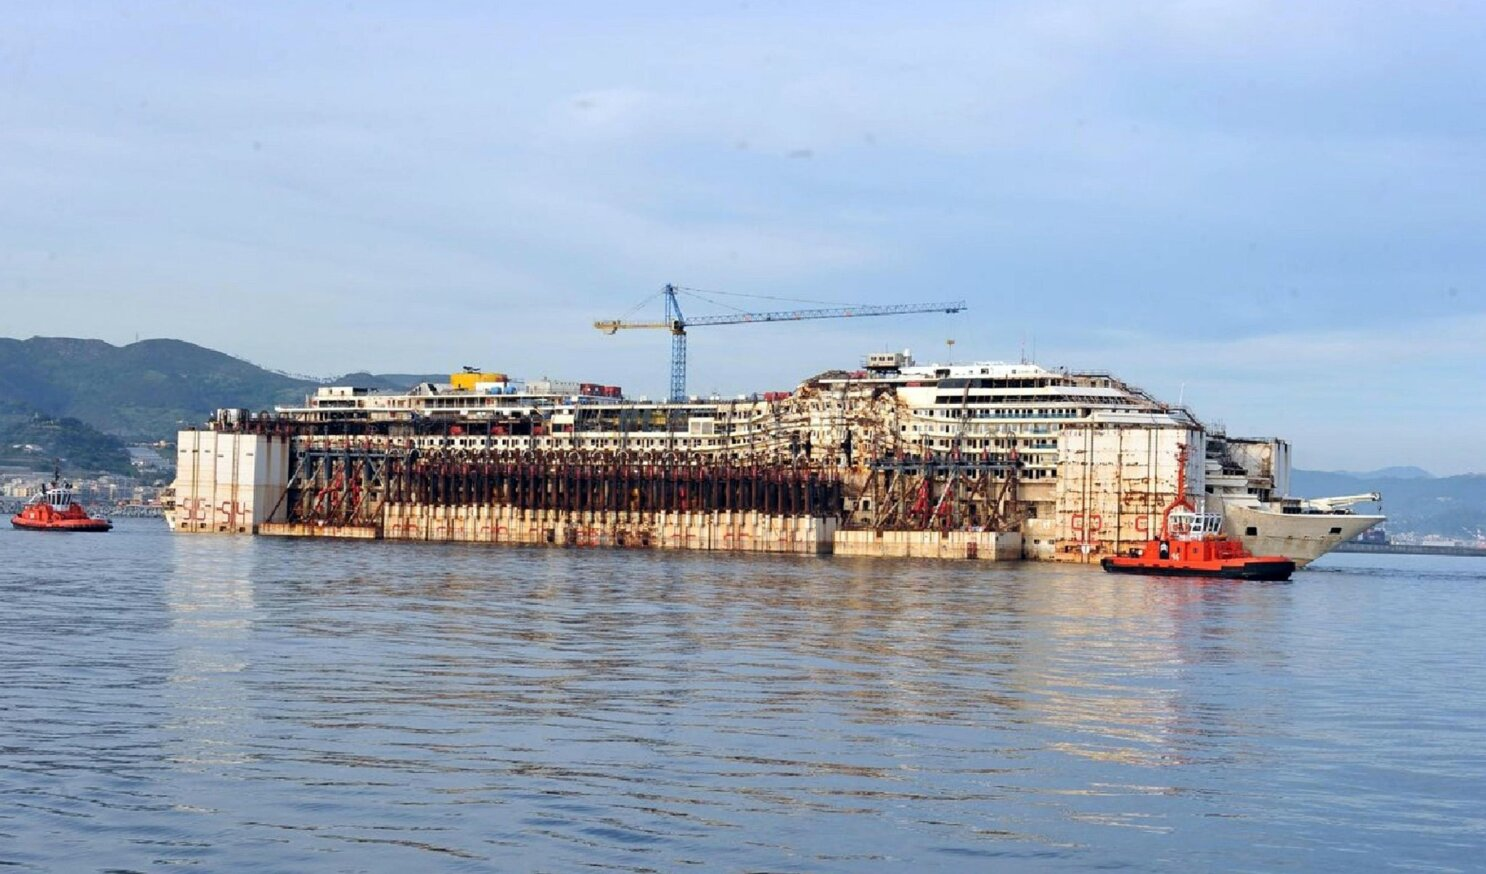 Gutted Costa Concordia Cruise Ship Now Ready For Scrapping The San Diego Union Tribune